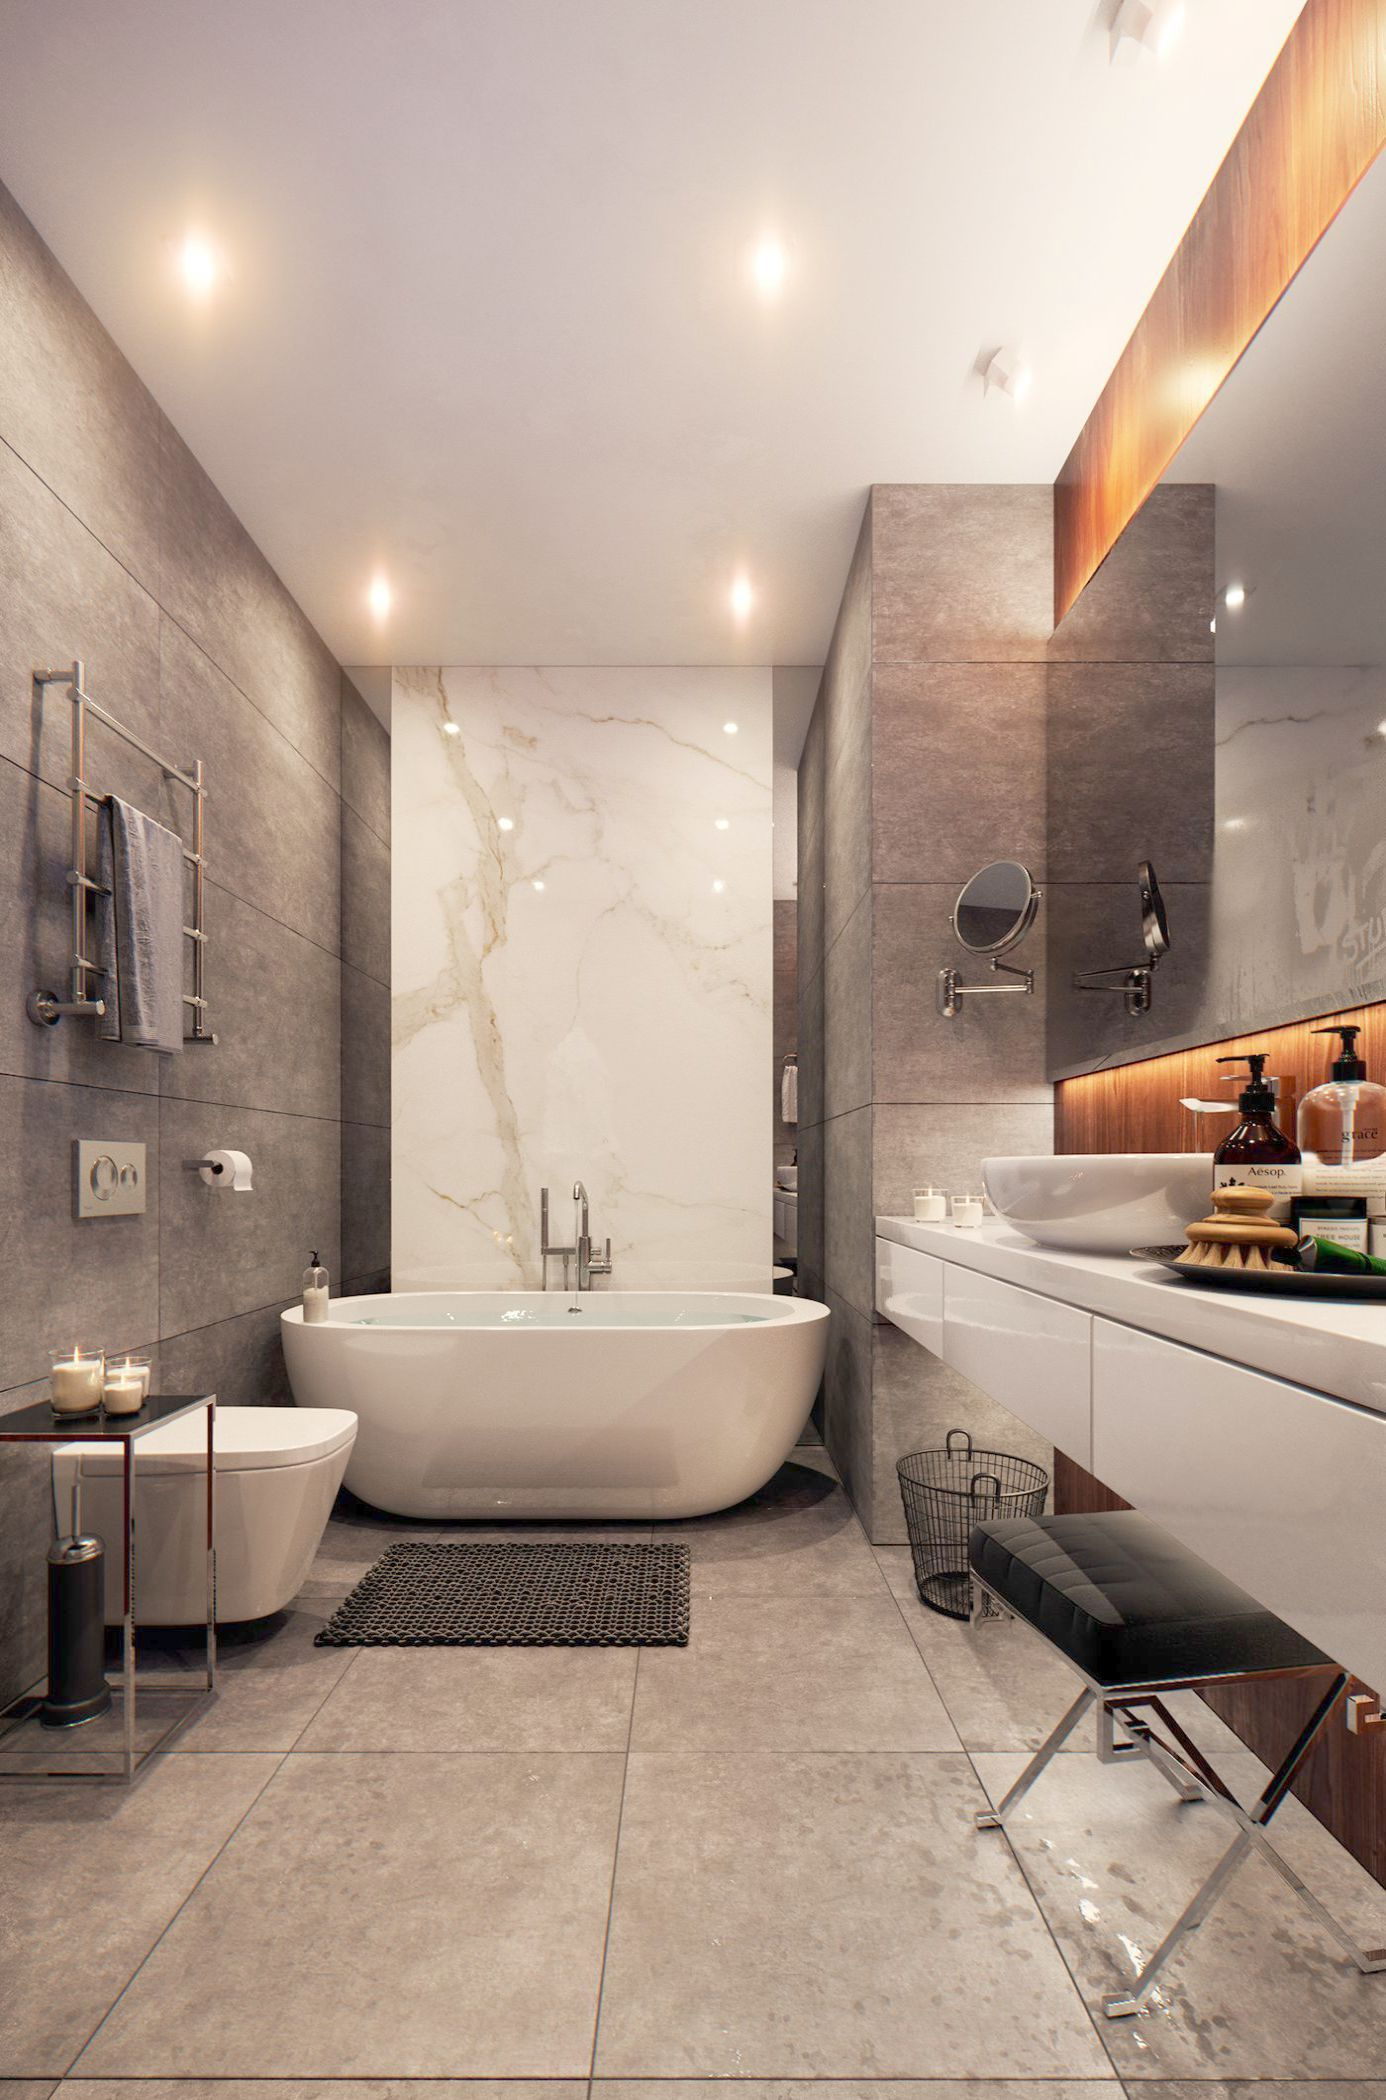 Landscape Gardening And Design With Plants Half Modern Landscape And Design Medford Ny Modern Master Bathroom Bathroom Design Trendy Bathroom